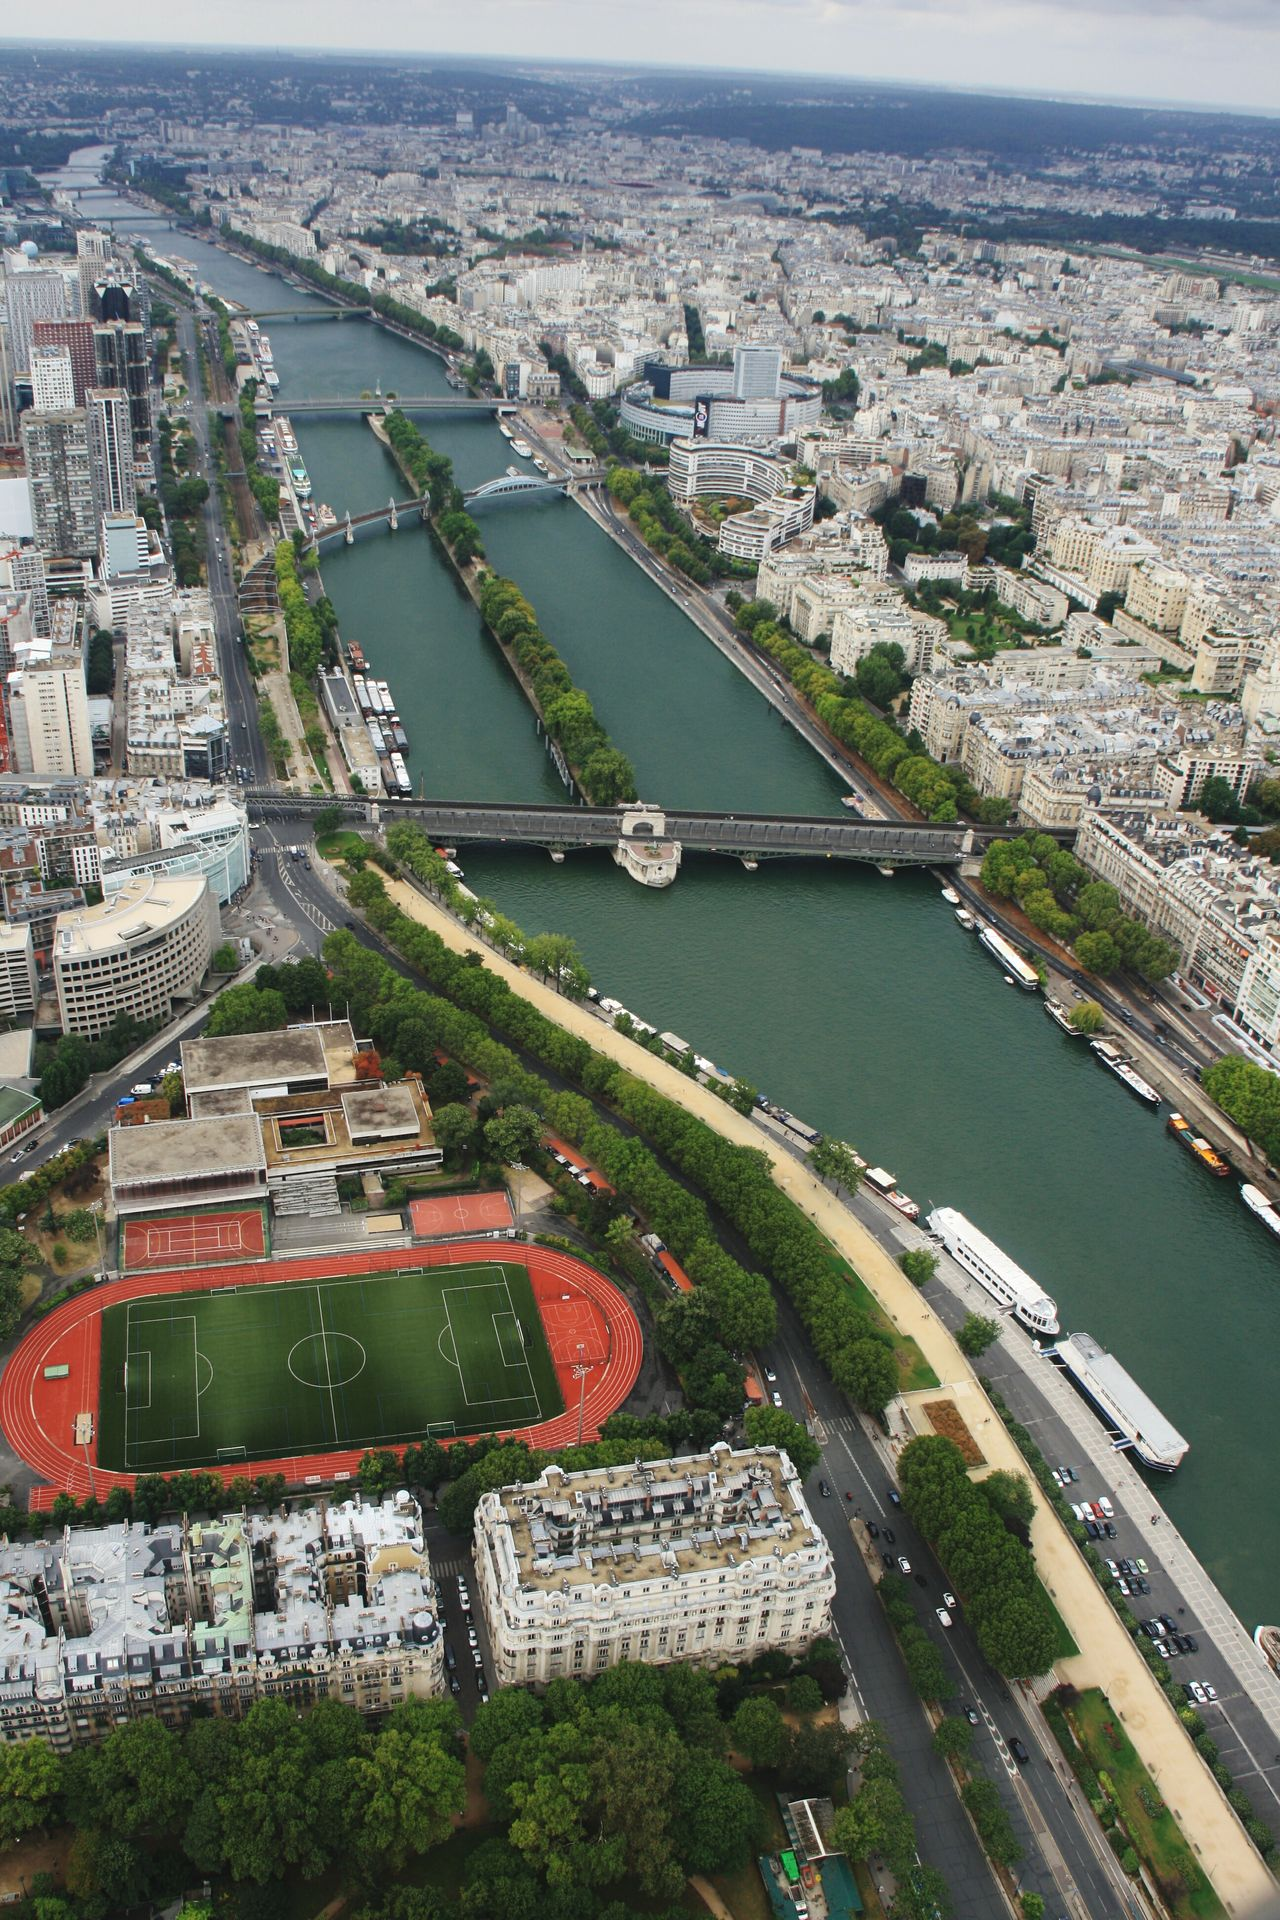 Neighborhood Map Aerial View Paris, France  RePicture Travel EyeEm Gallery Photography No People EyeEmNewHere EyeEm Travel Photography